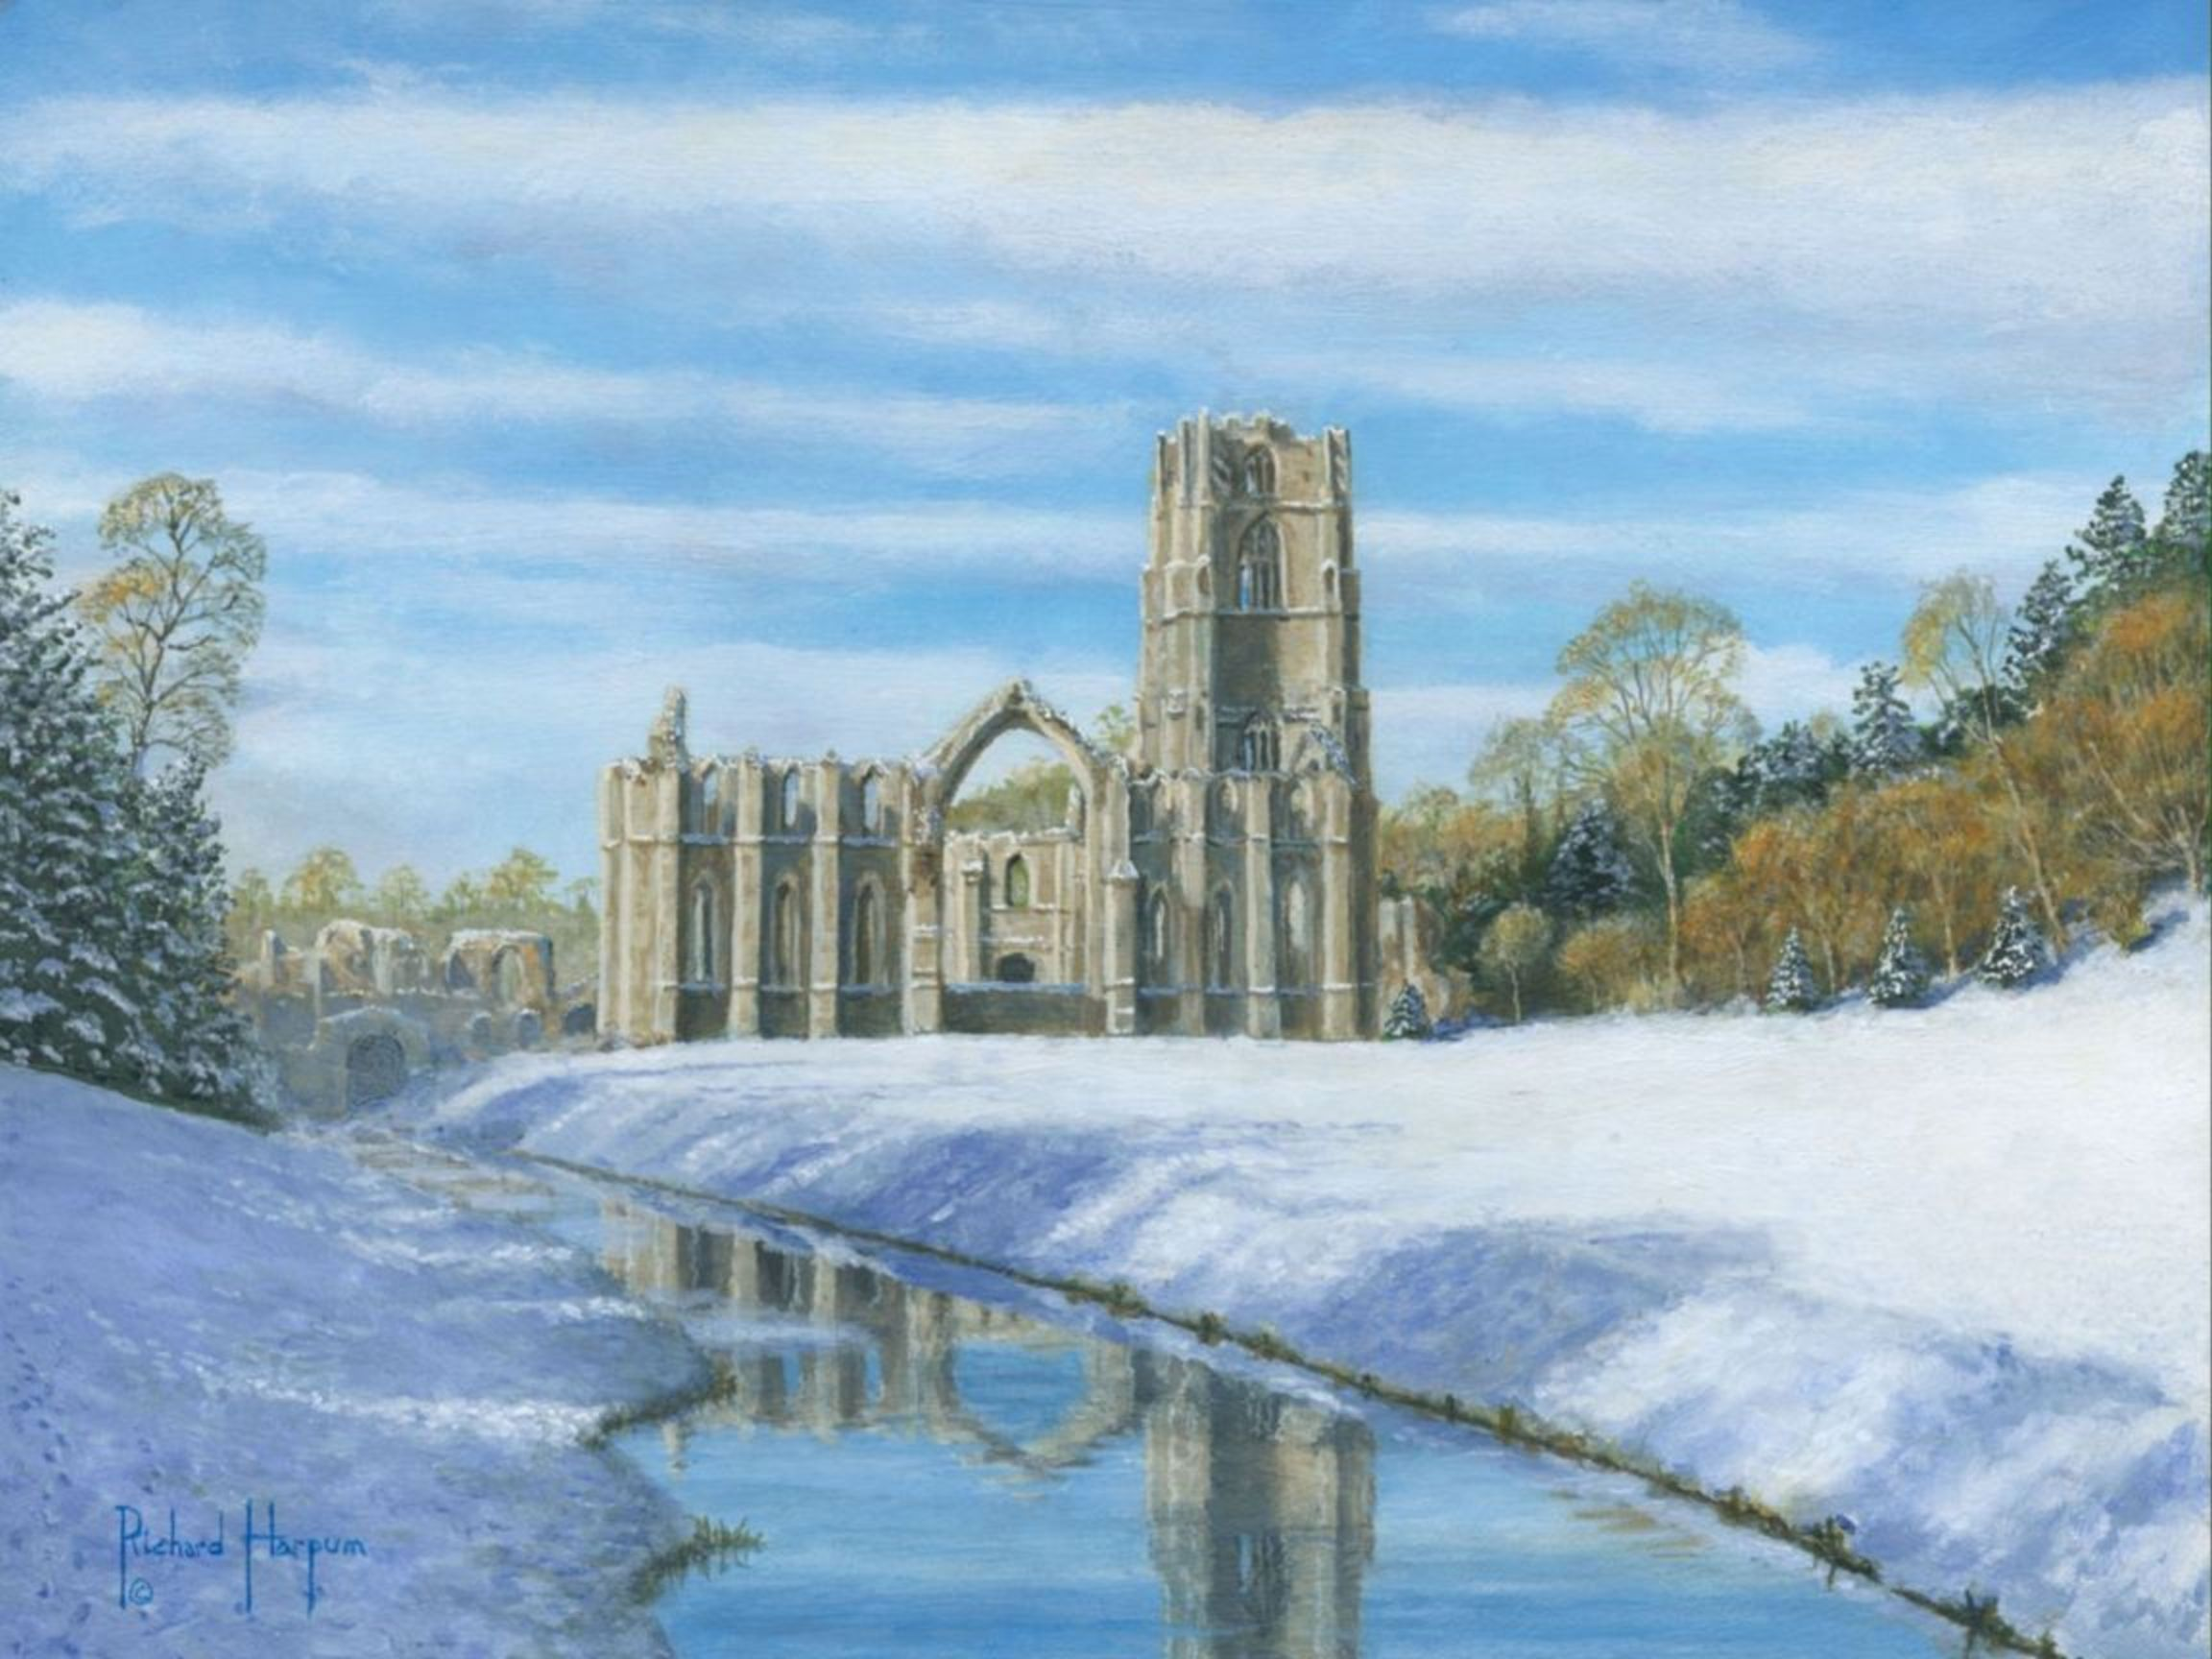 Painting - Winter  Morning, Fountain's Abbey, Yorkshire